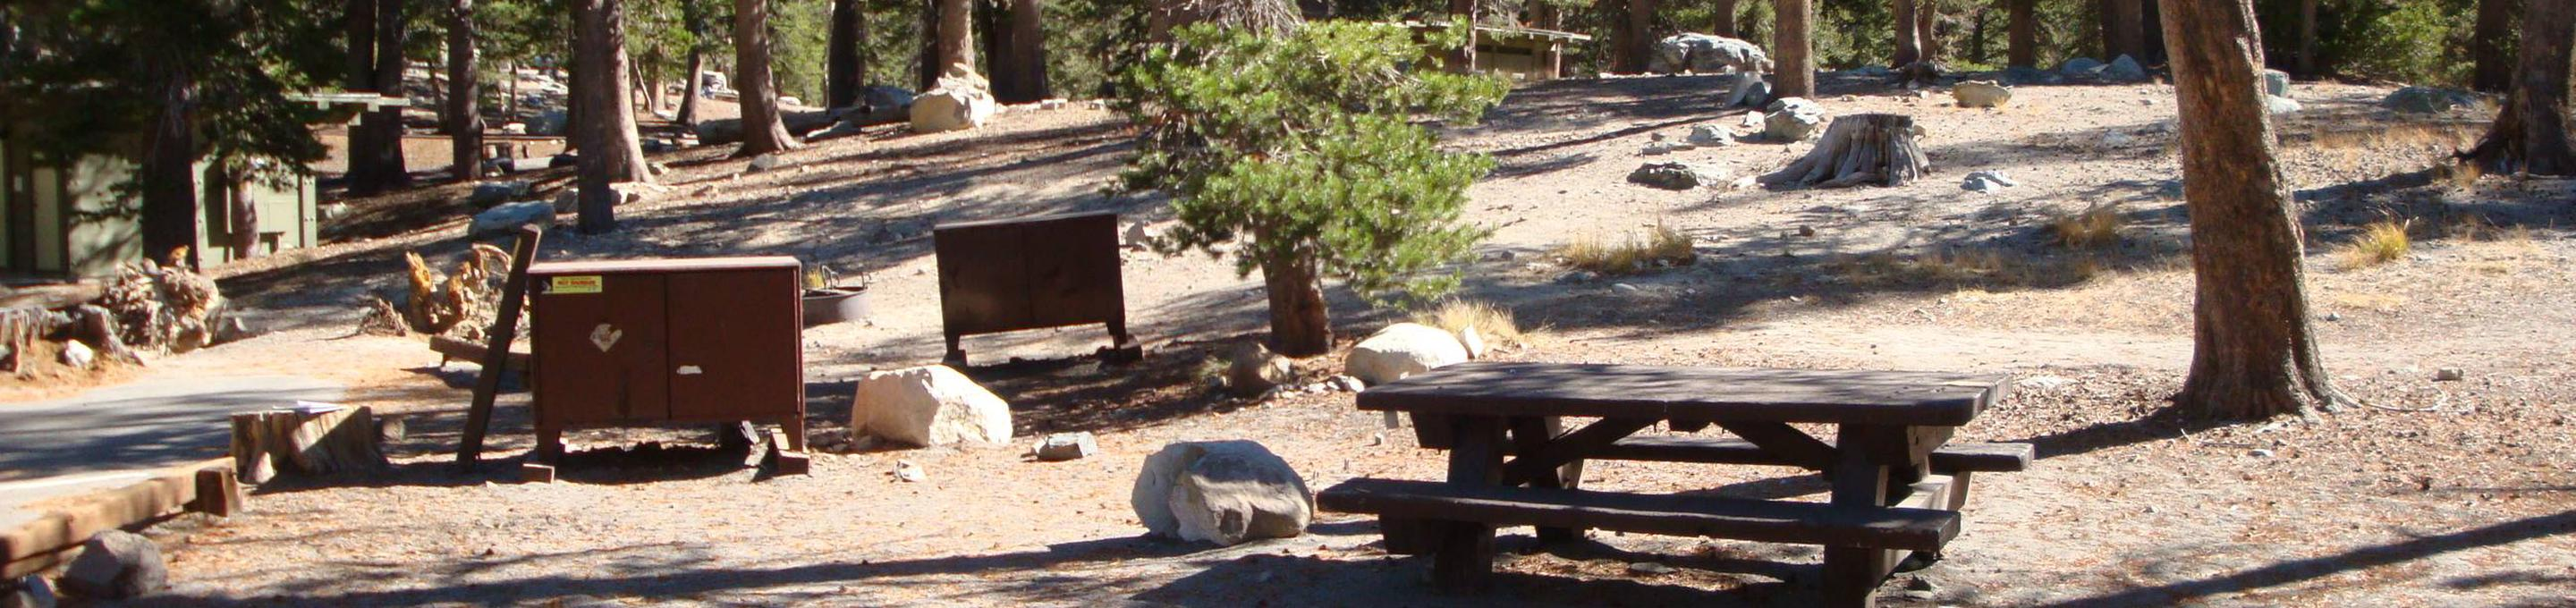 Lake Mary Campground SITE 14